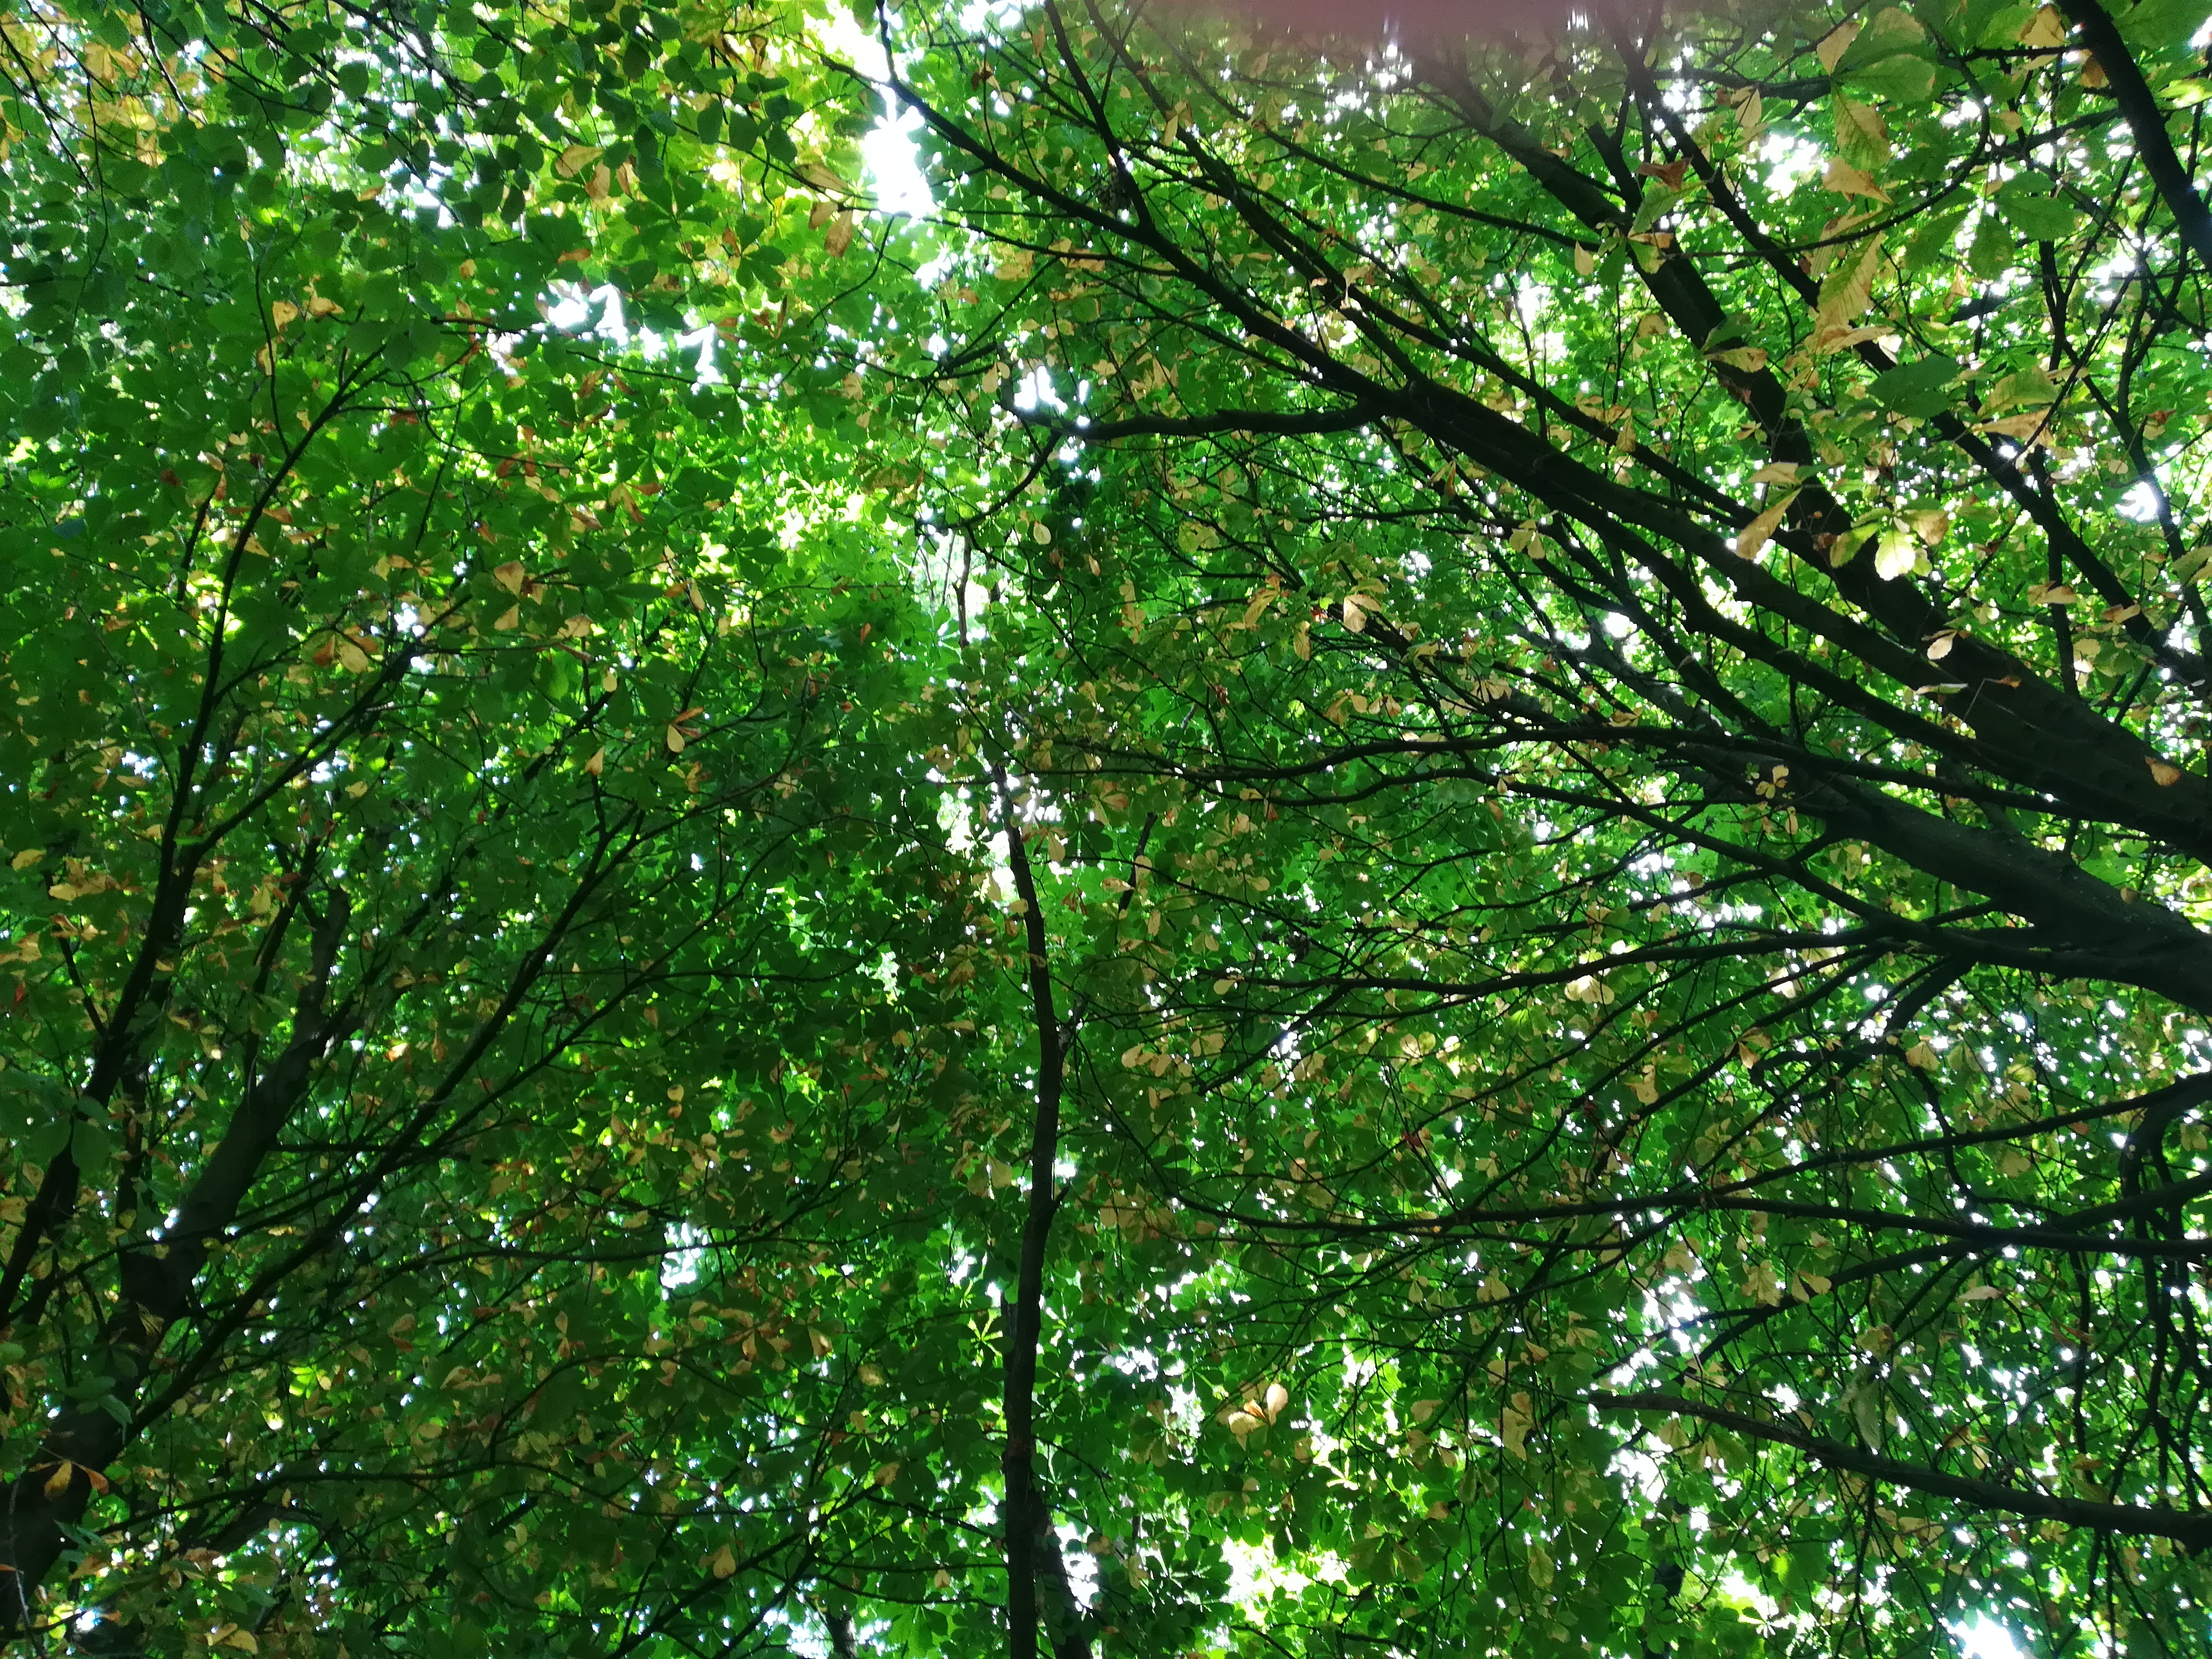 The joined canopies of many trees in leaf, taken from beneath.